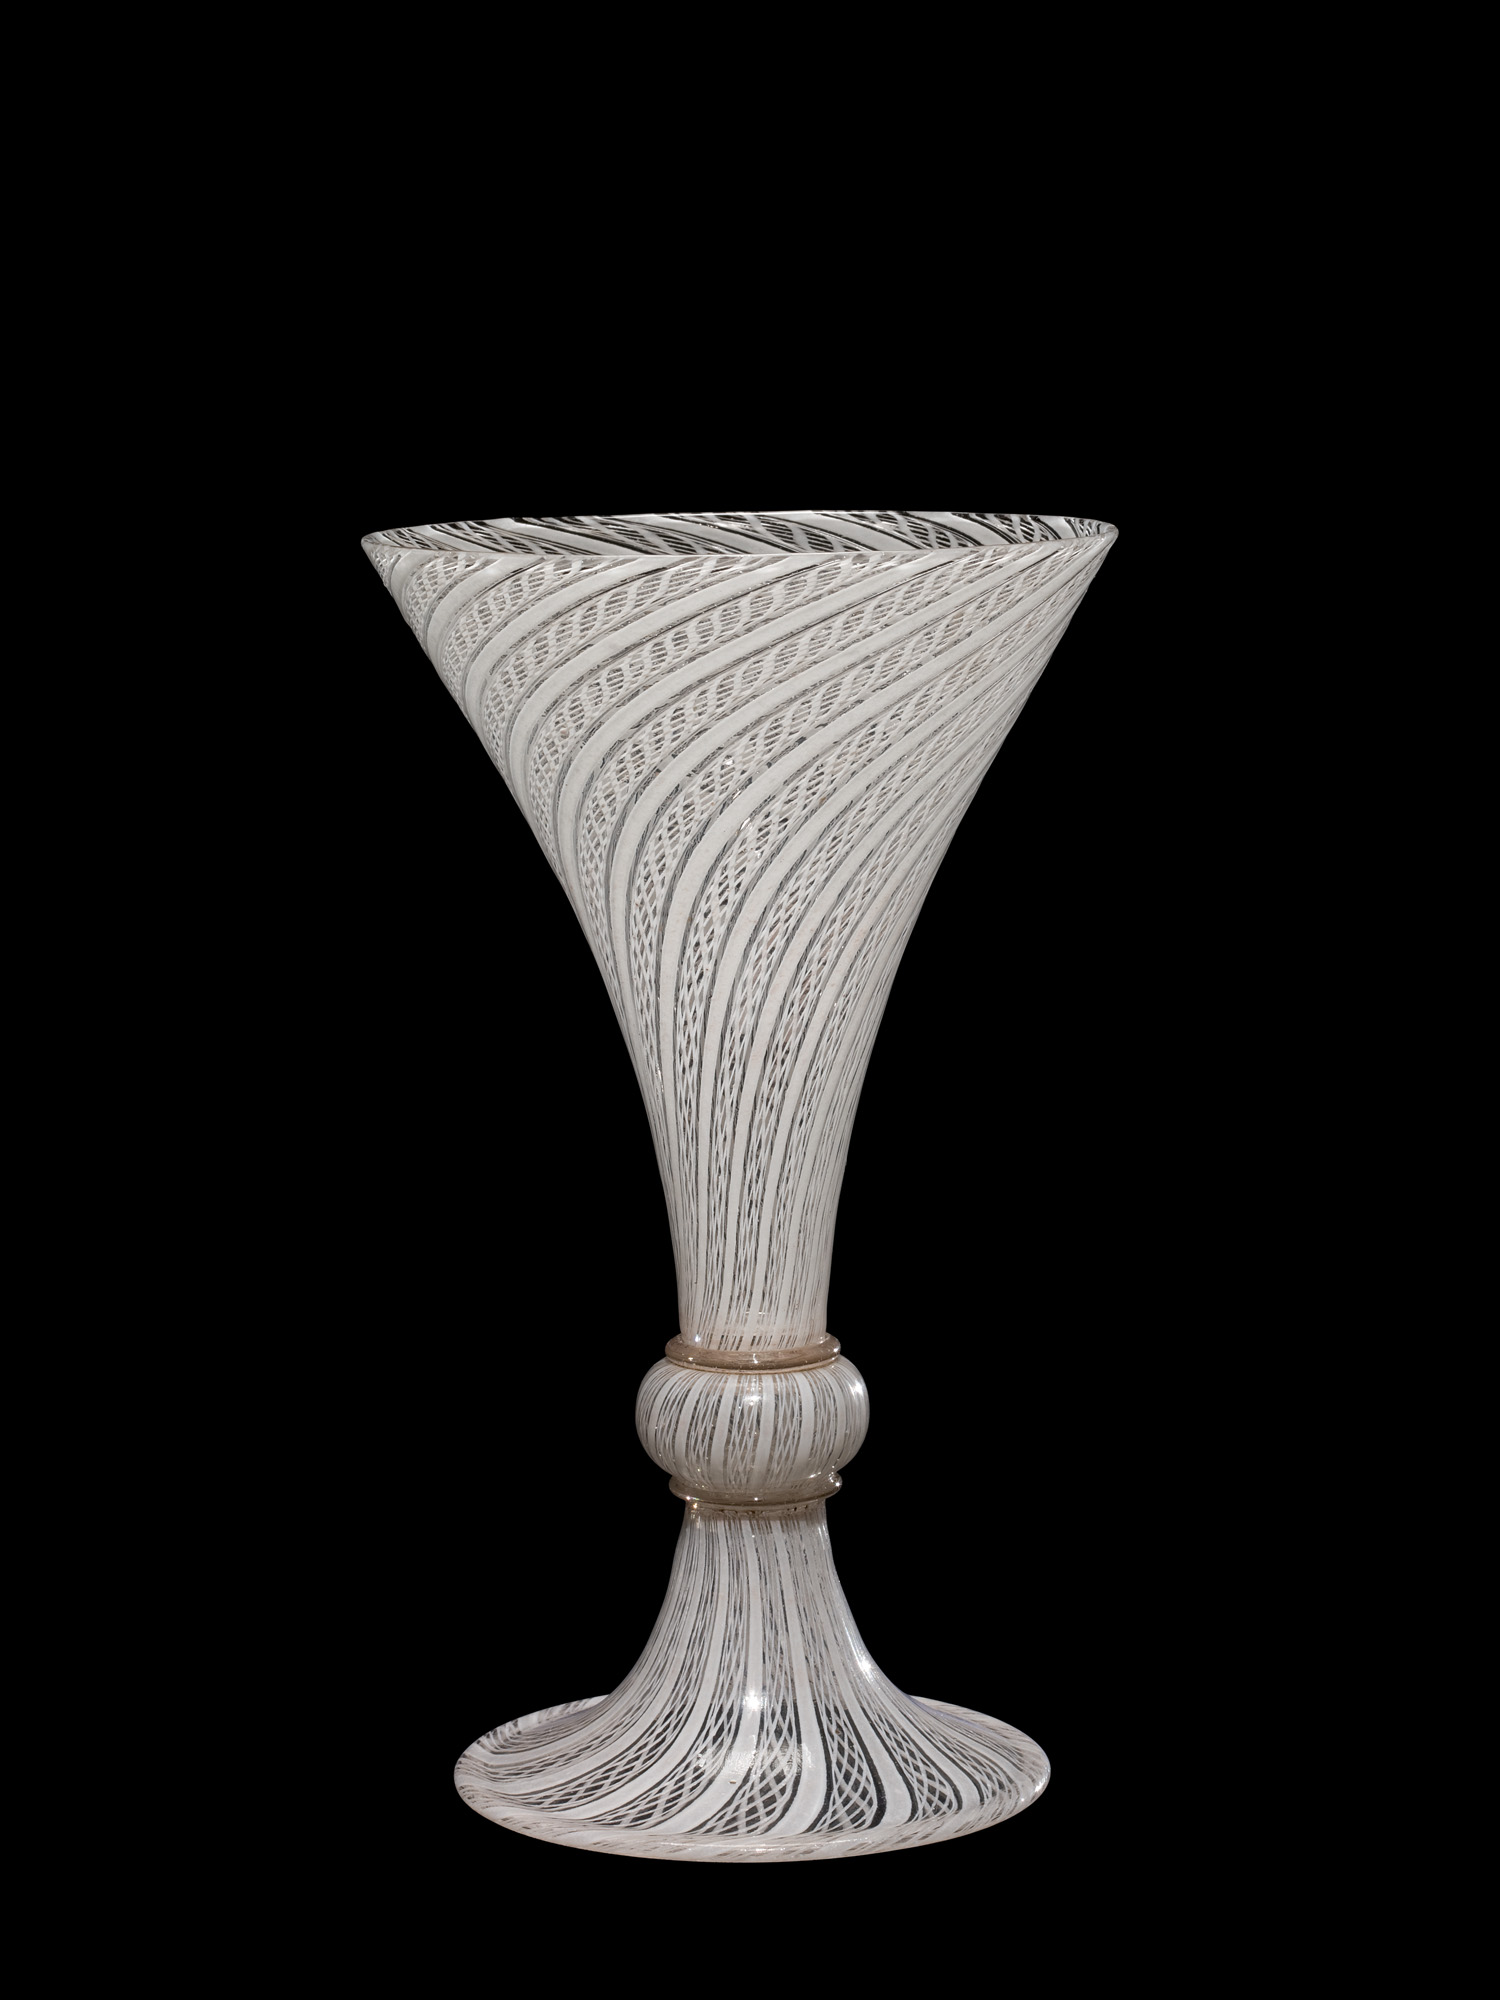 Three-bubble Goblet with Filigrana